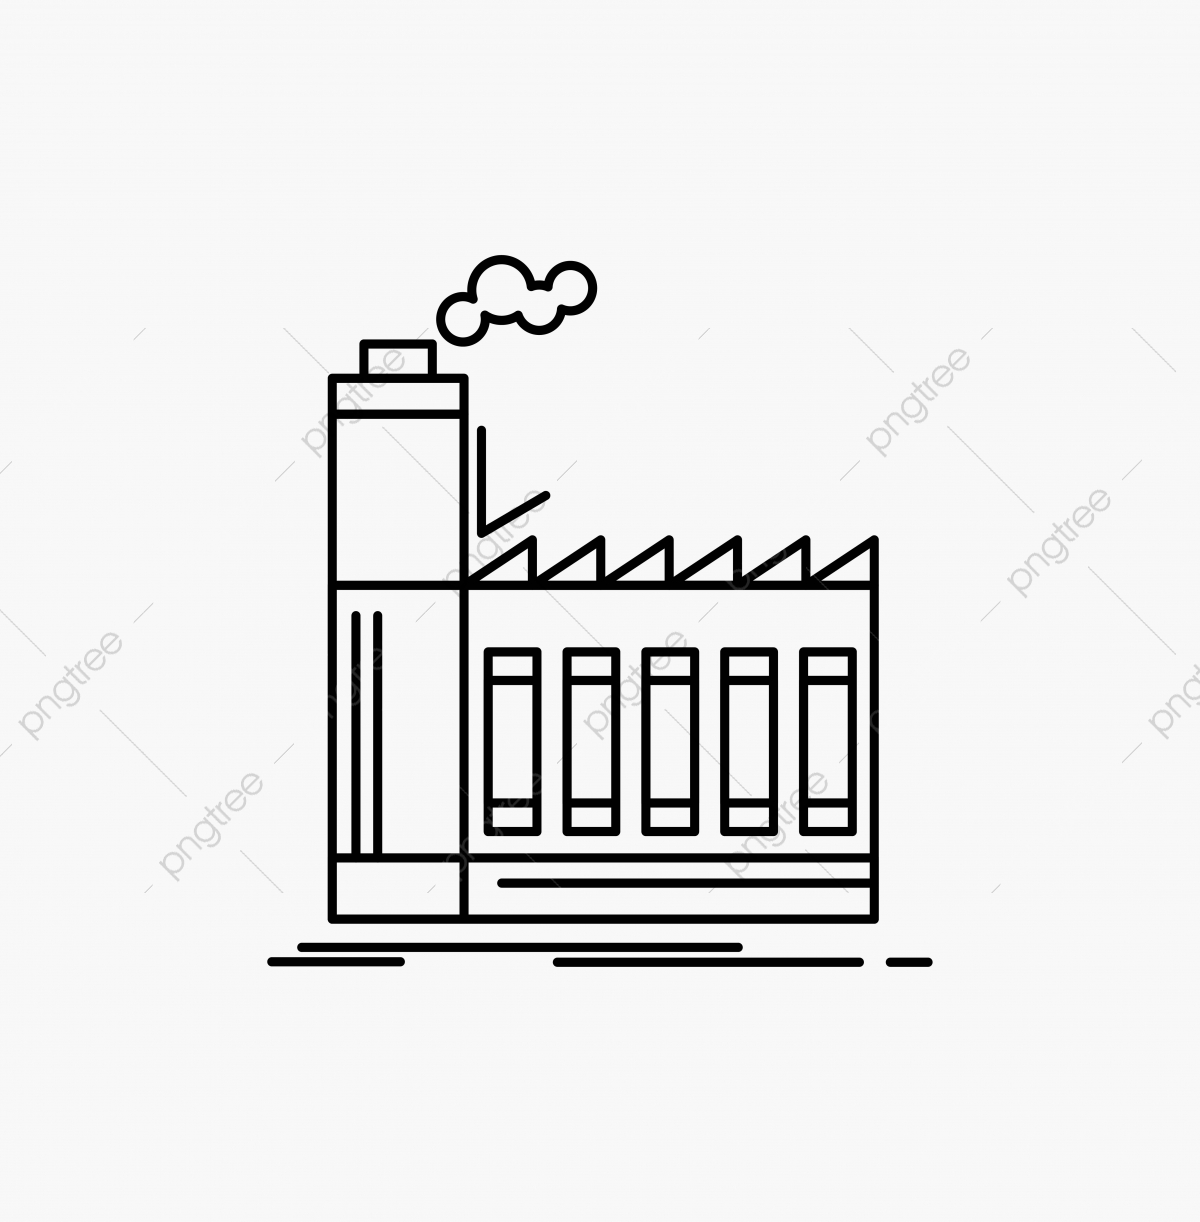 jpg library download Factory industrial industry ic. Vector manufacturing production line.